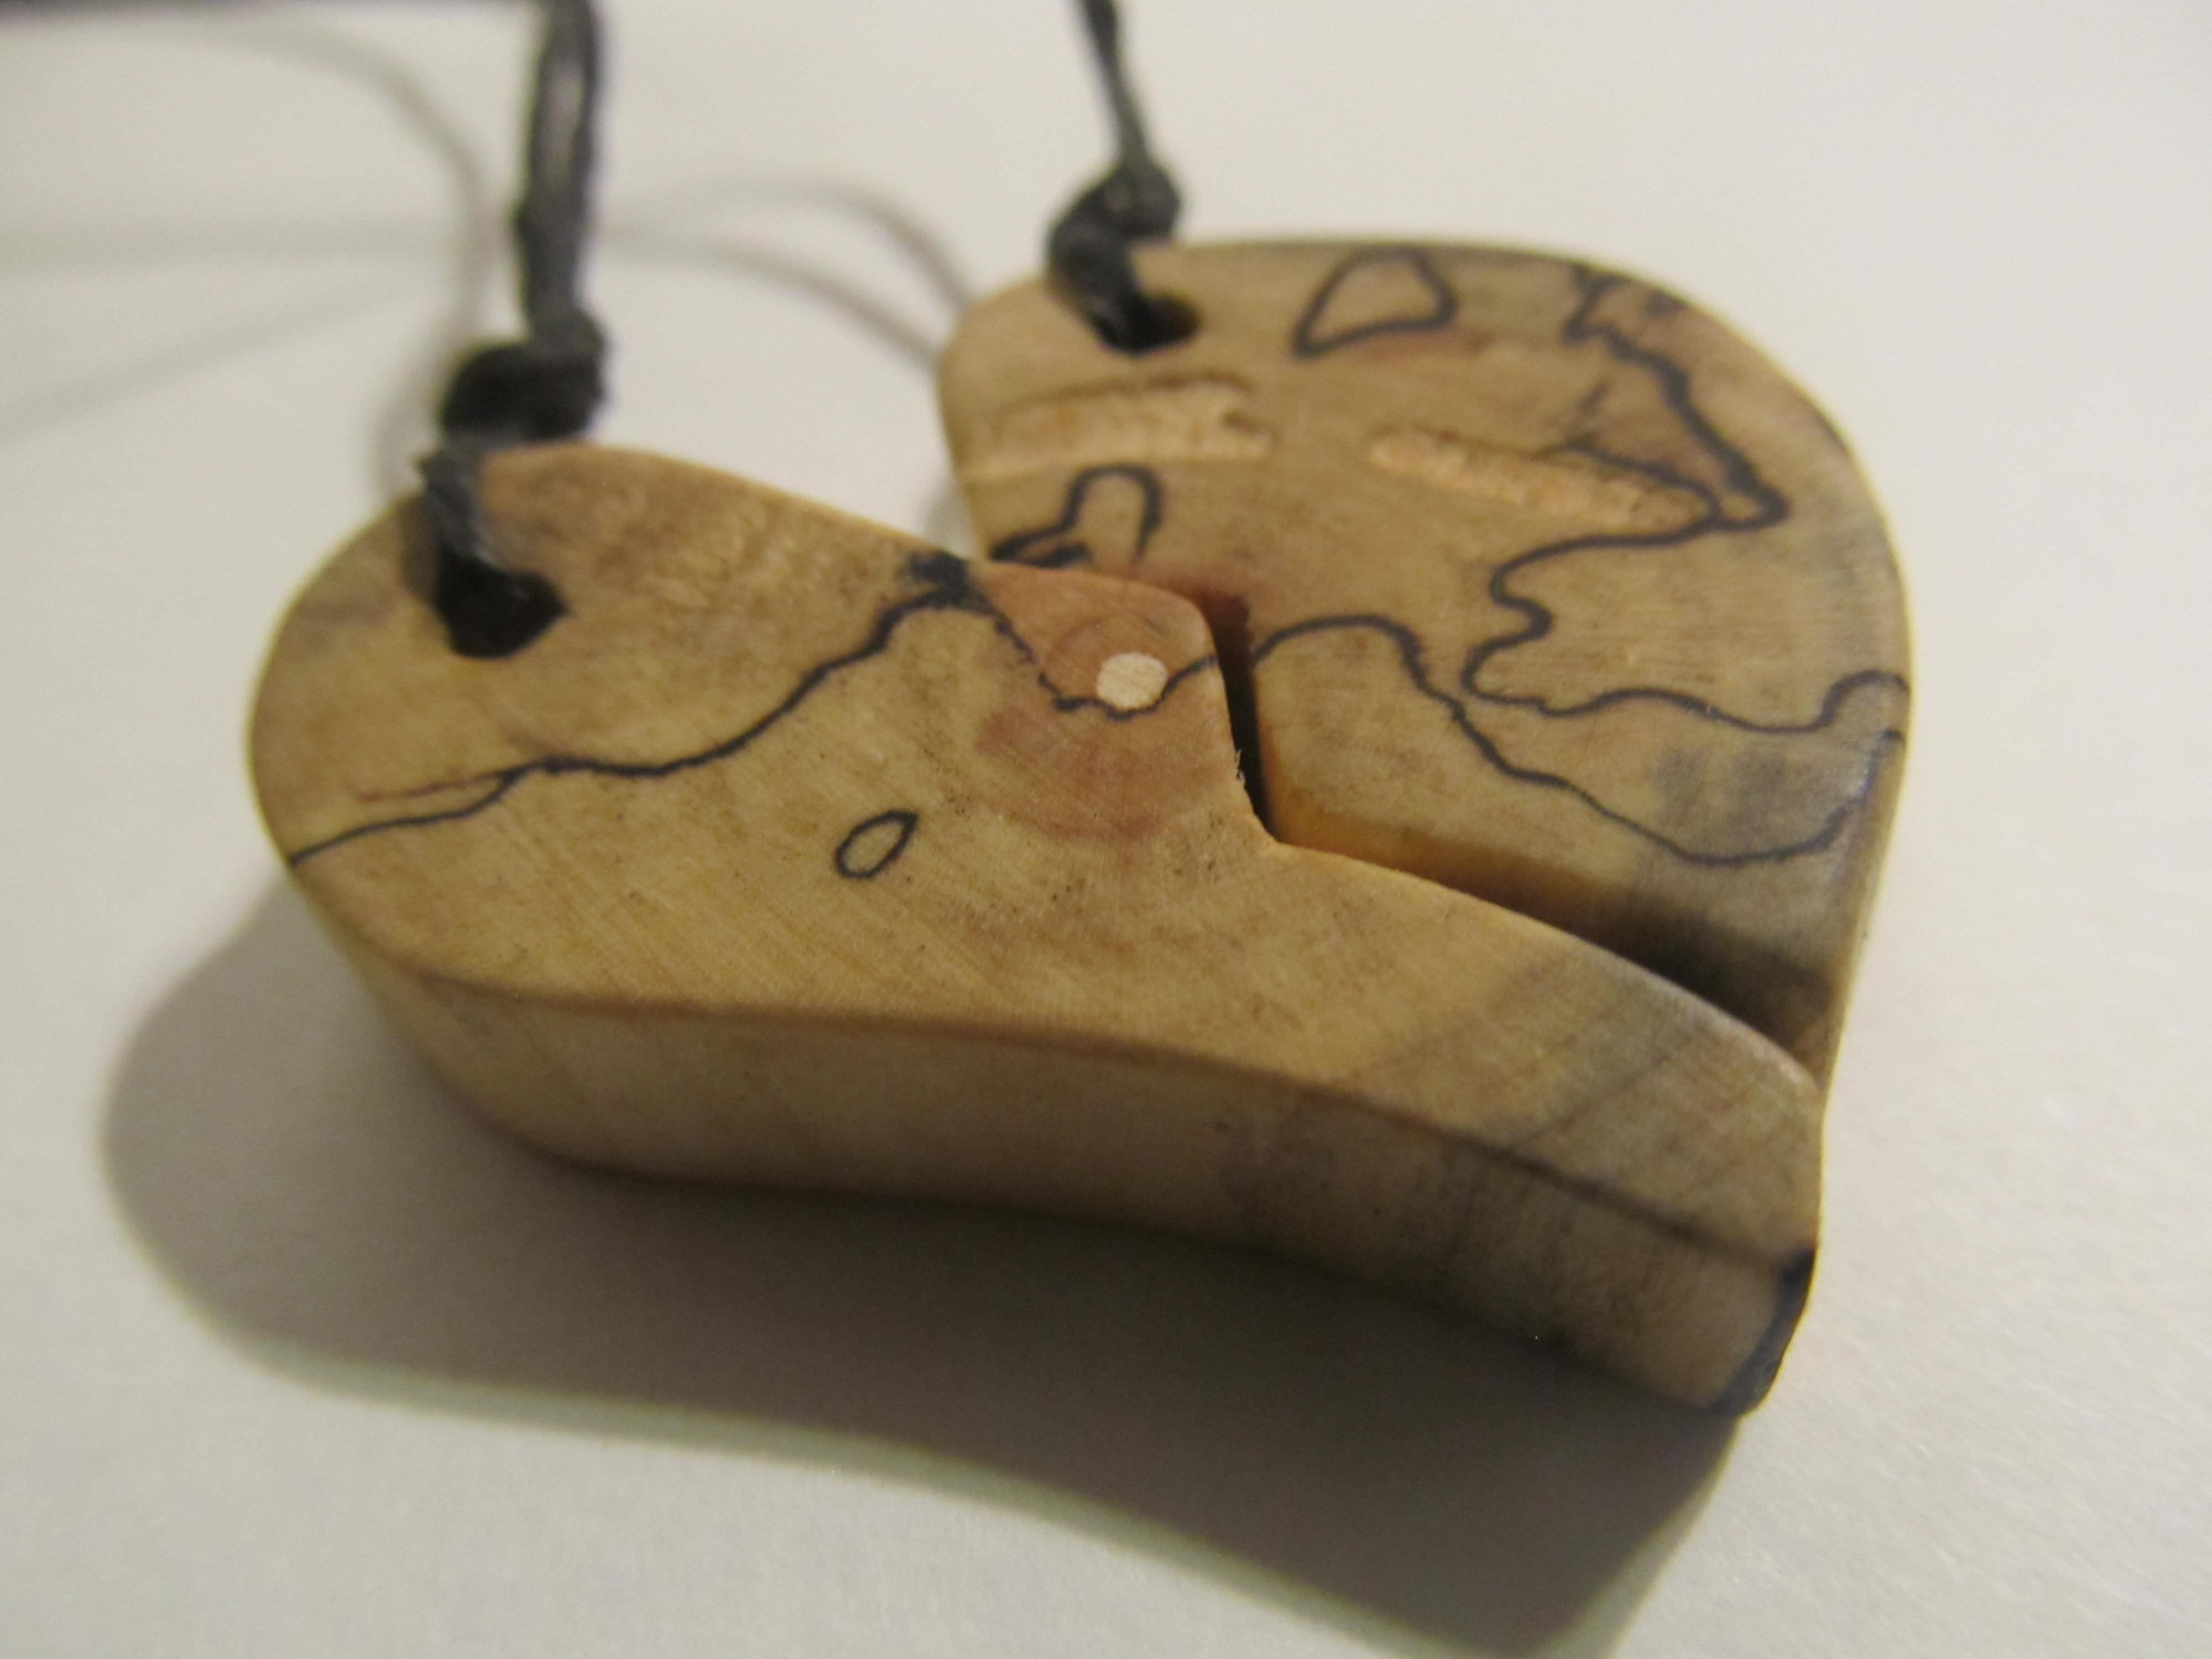 d3f0b87ff2 2 BFF Necklaces, Heartbreak, Heart Pendant, Half Heart, Best Friends  Forever, Puzzle Pieces, Wooden Pieces Jewelry, Woodenist, FREE Shipping on  Storenvy